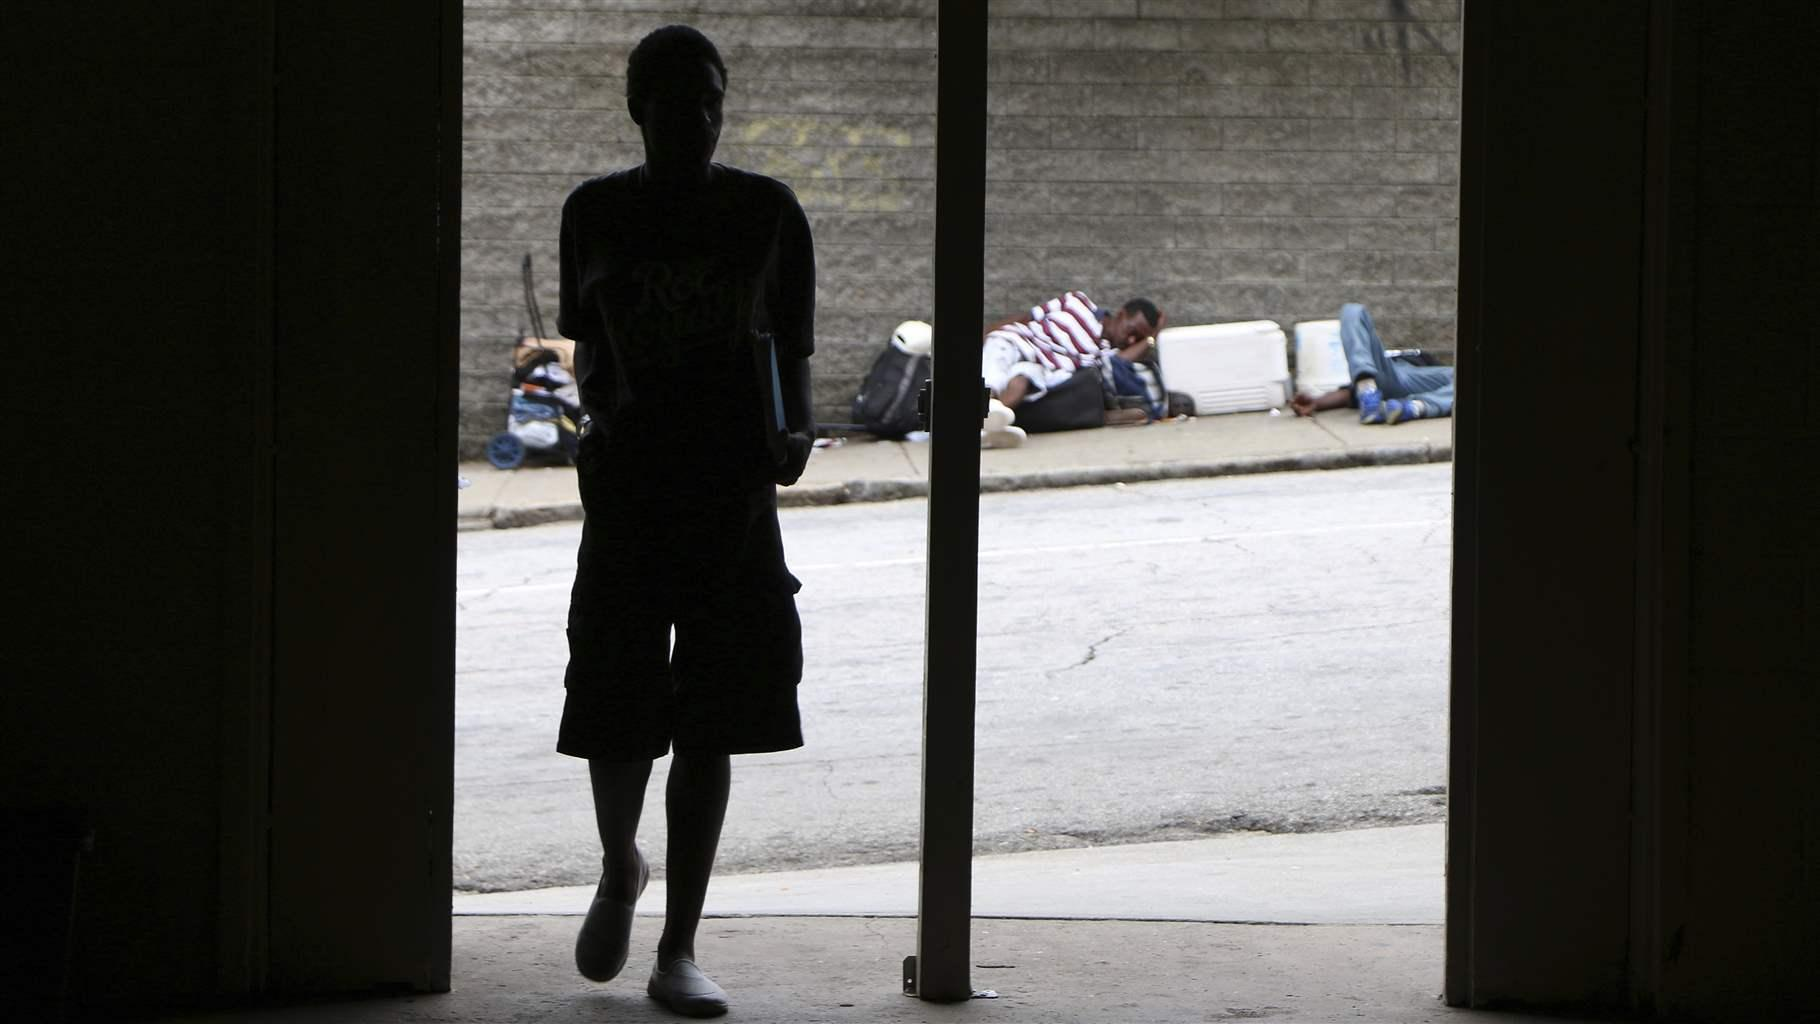 Where 'Returning Citizens' Find Housing After Prison